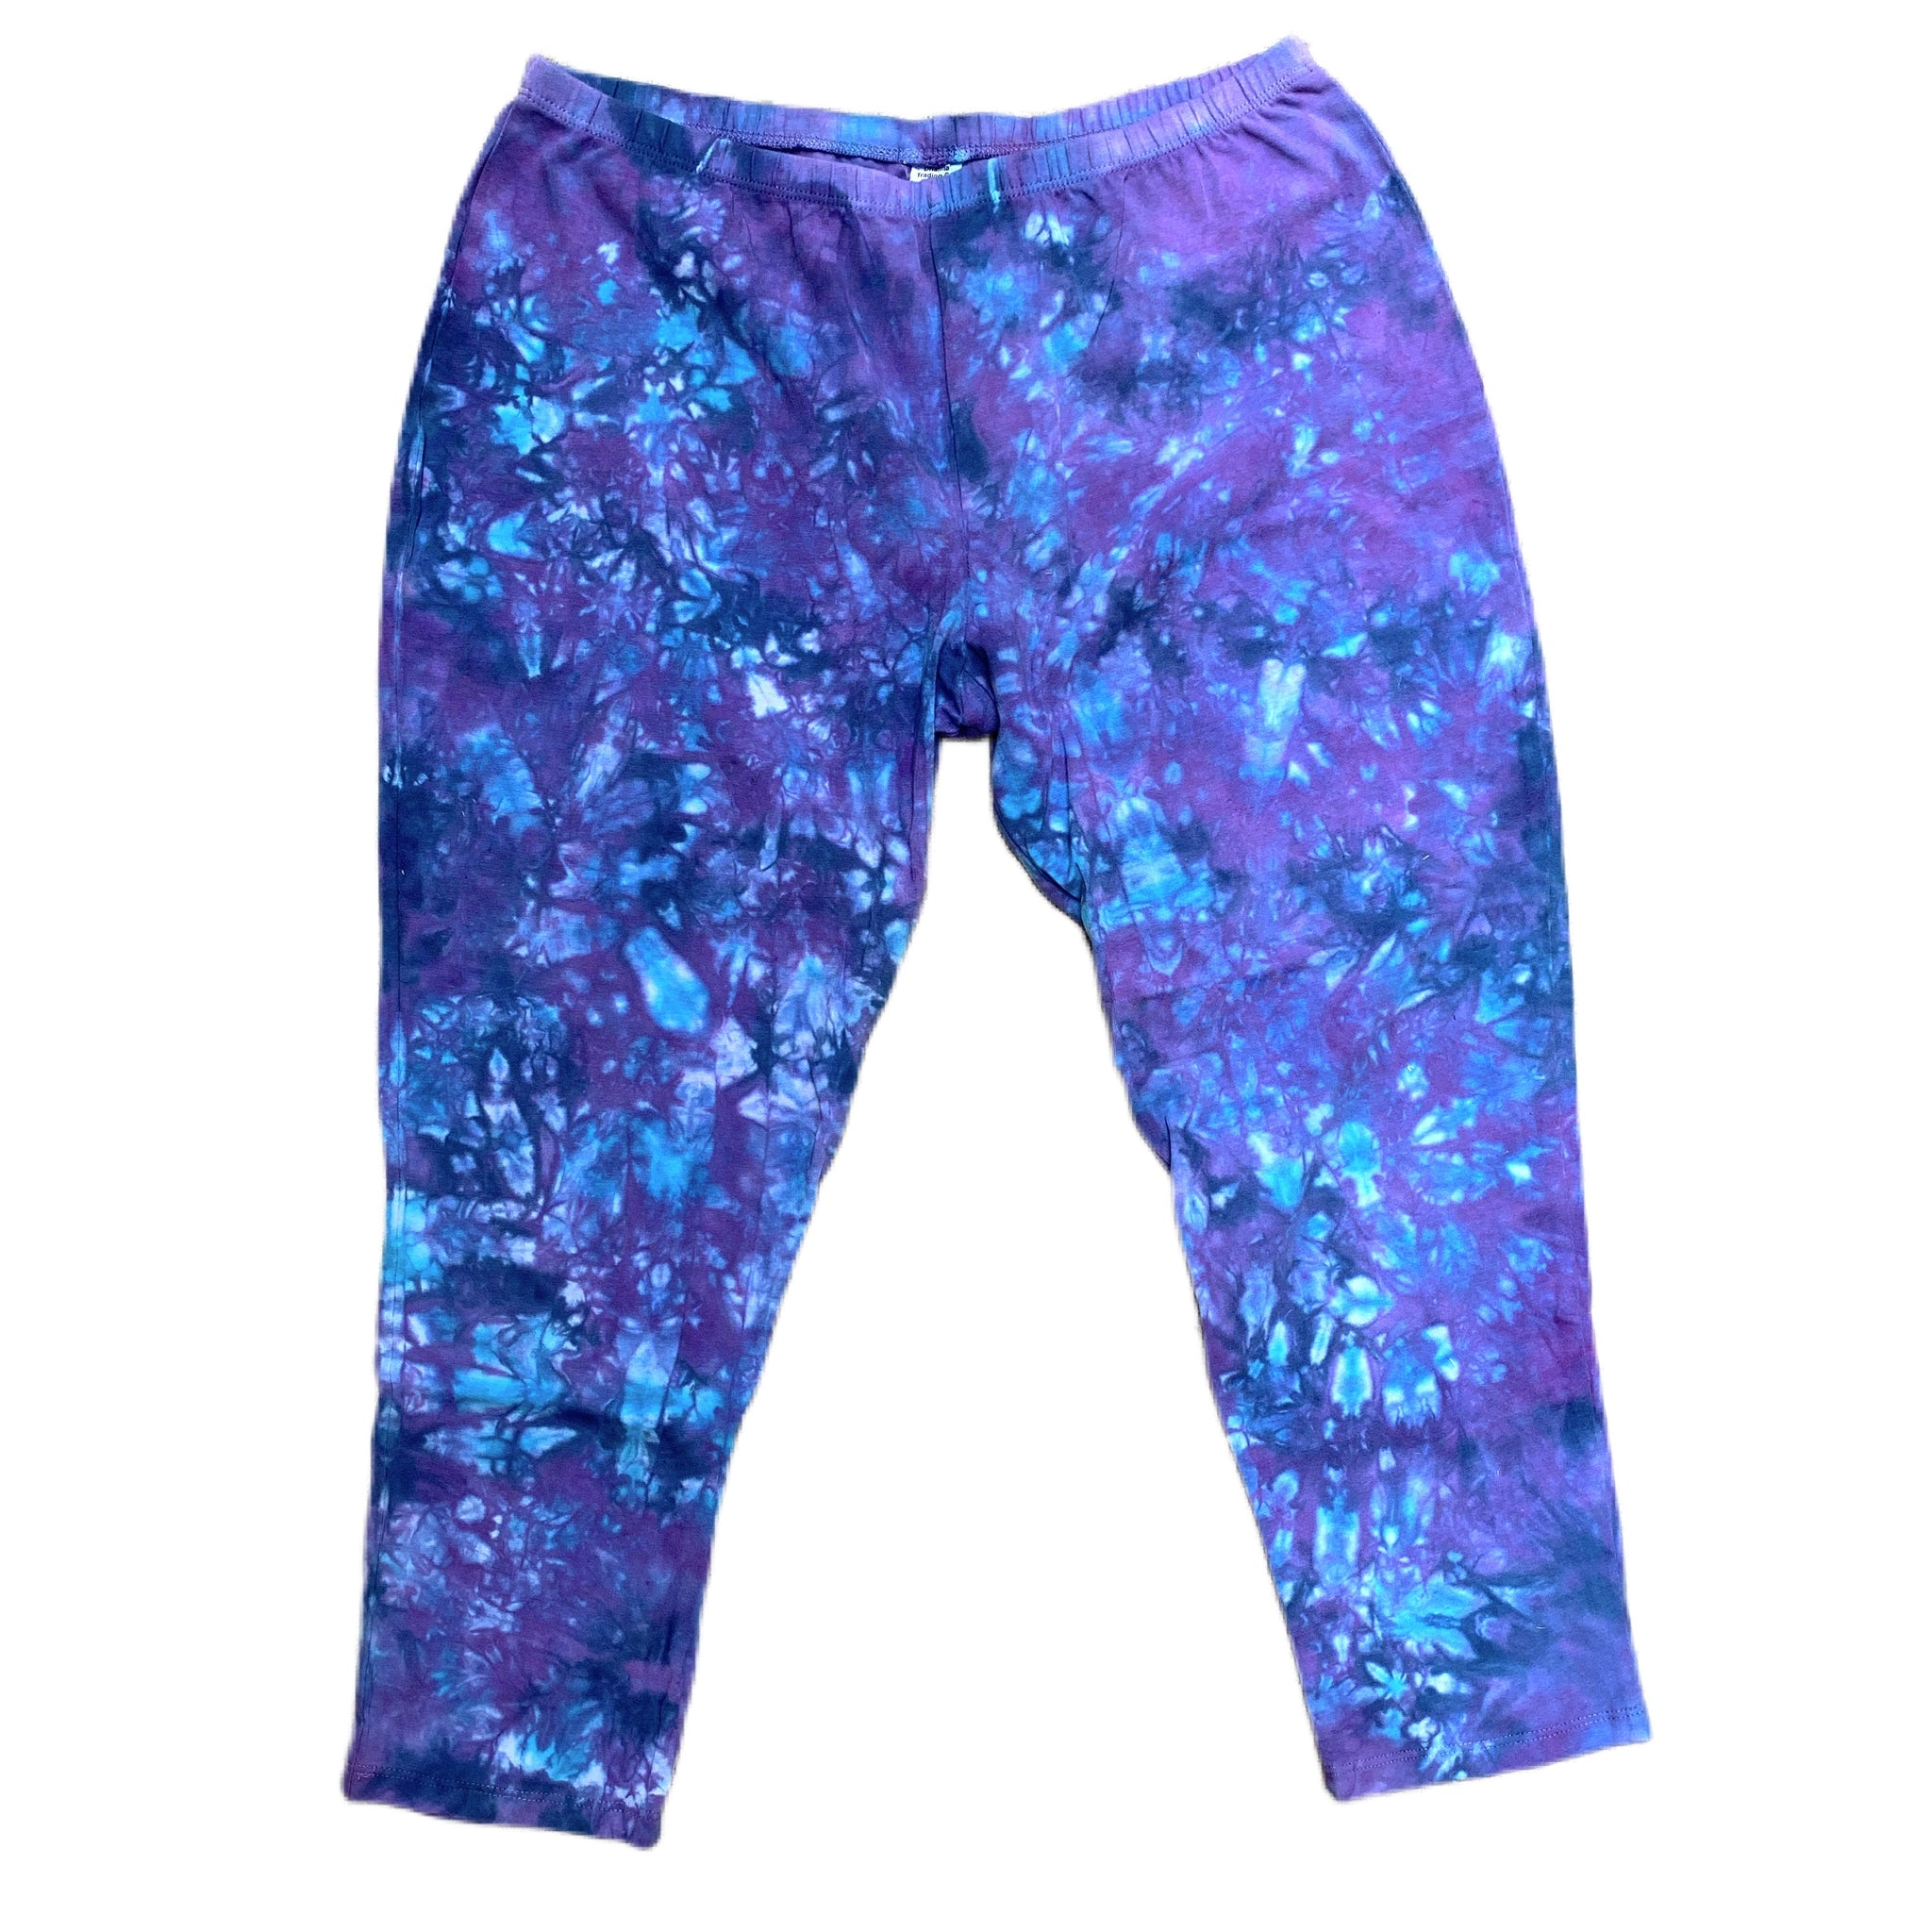 Purple & Blue Tie Dye Capri Pants - Med & Lrg